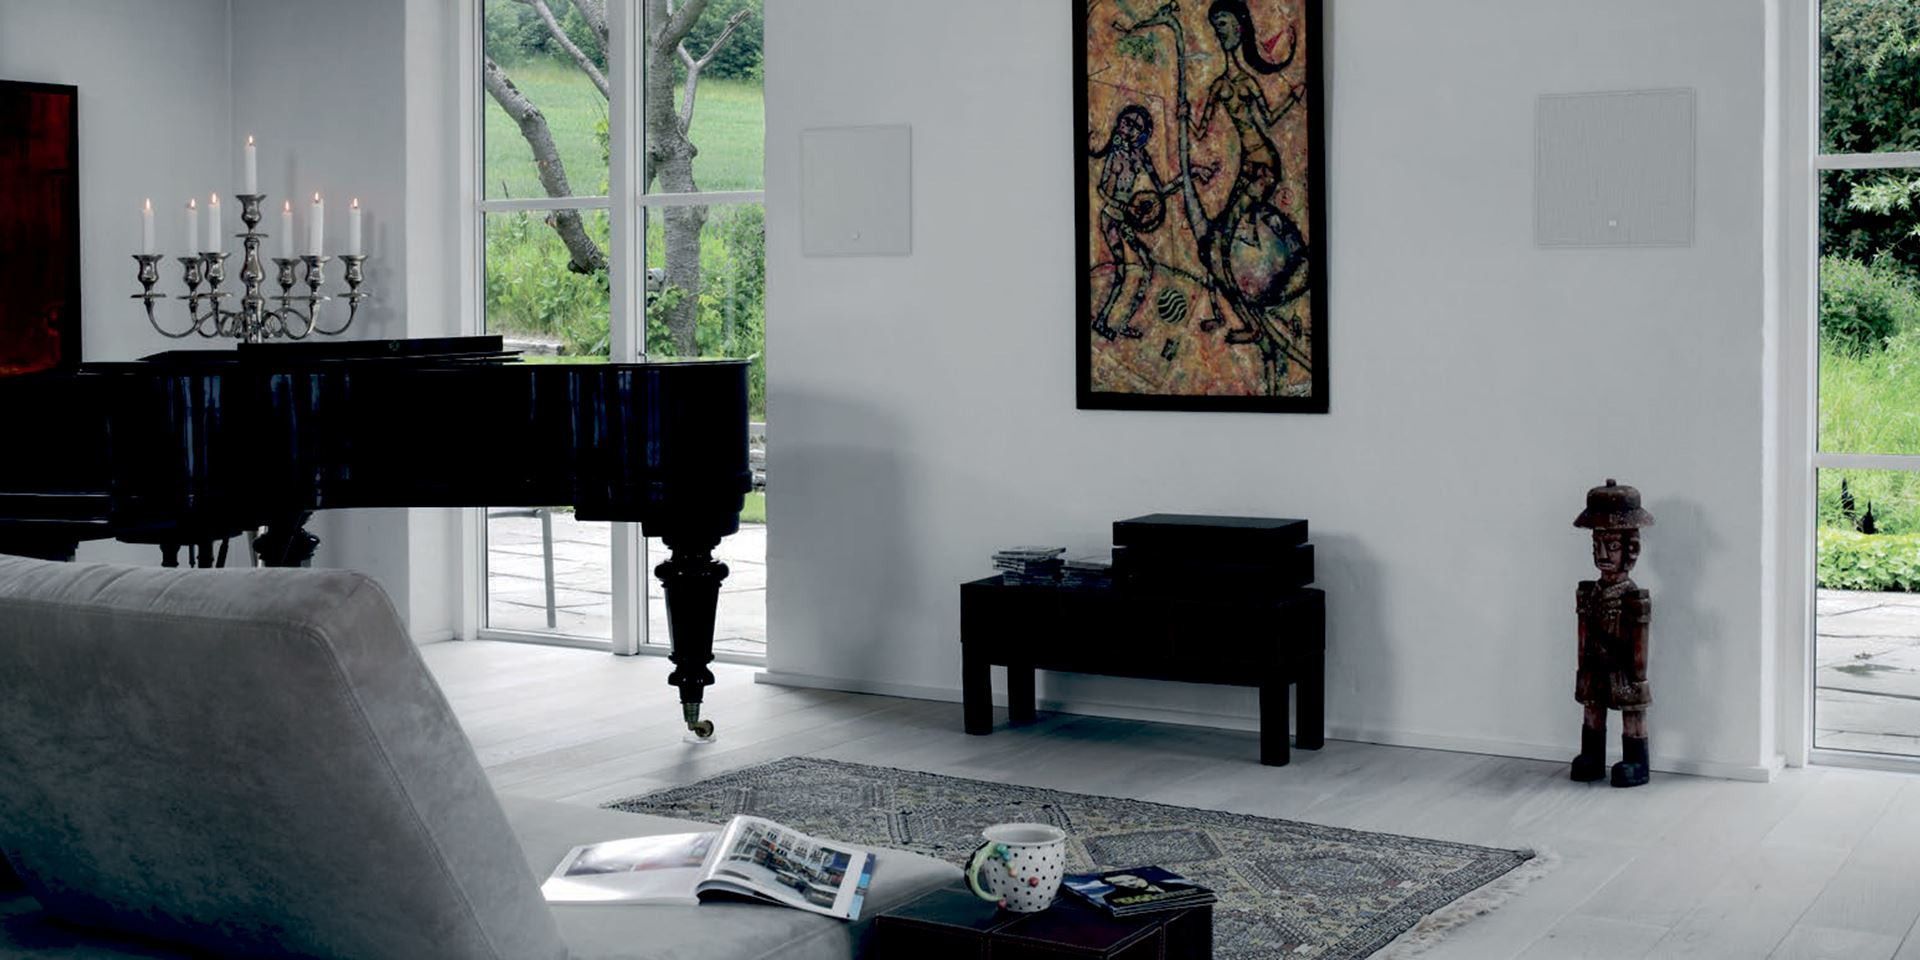 Two In Wall Speakers in the wall in a modern house by black piano